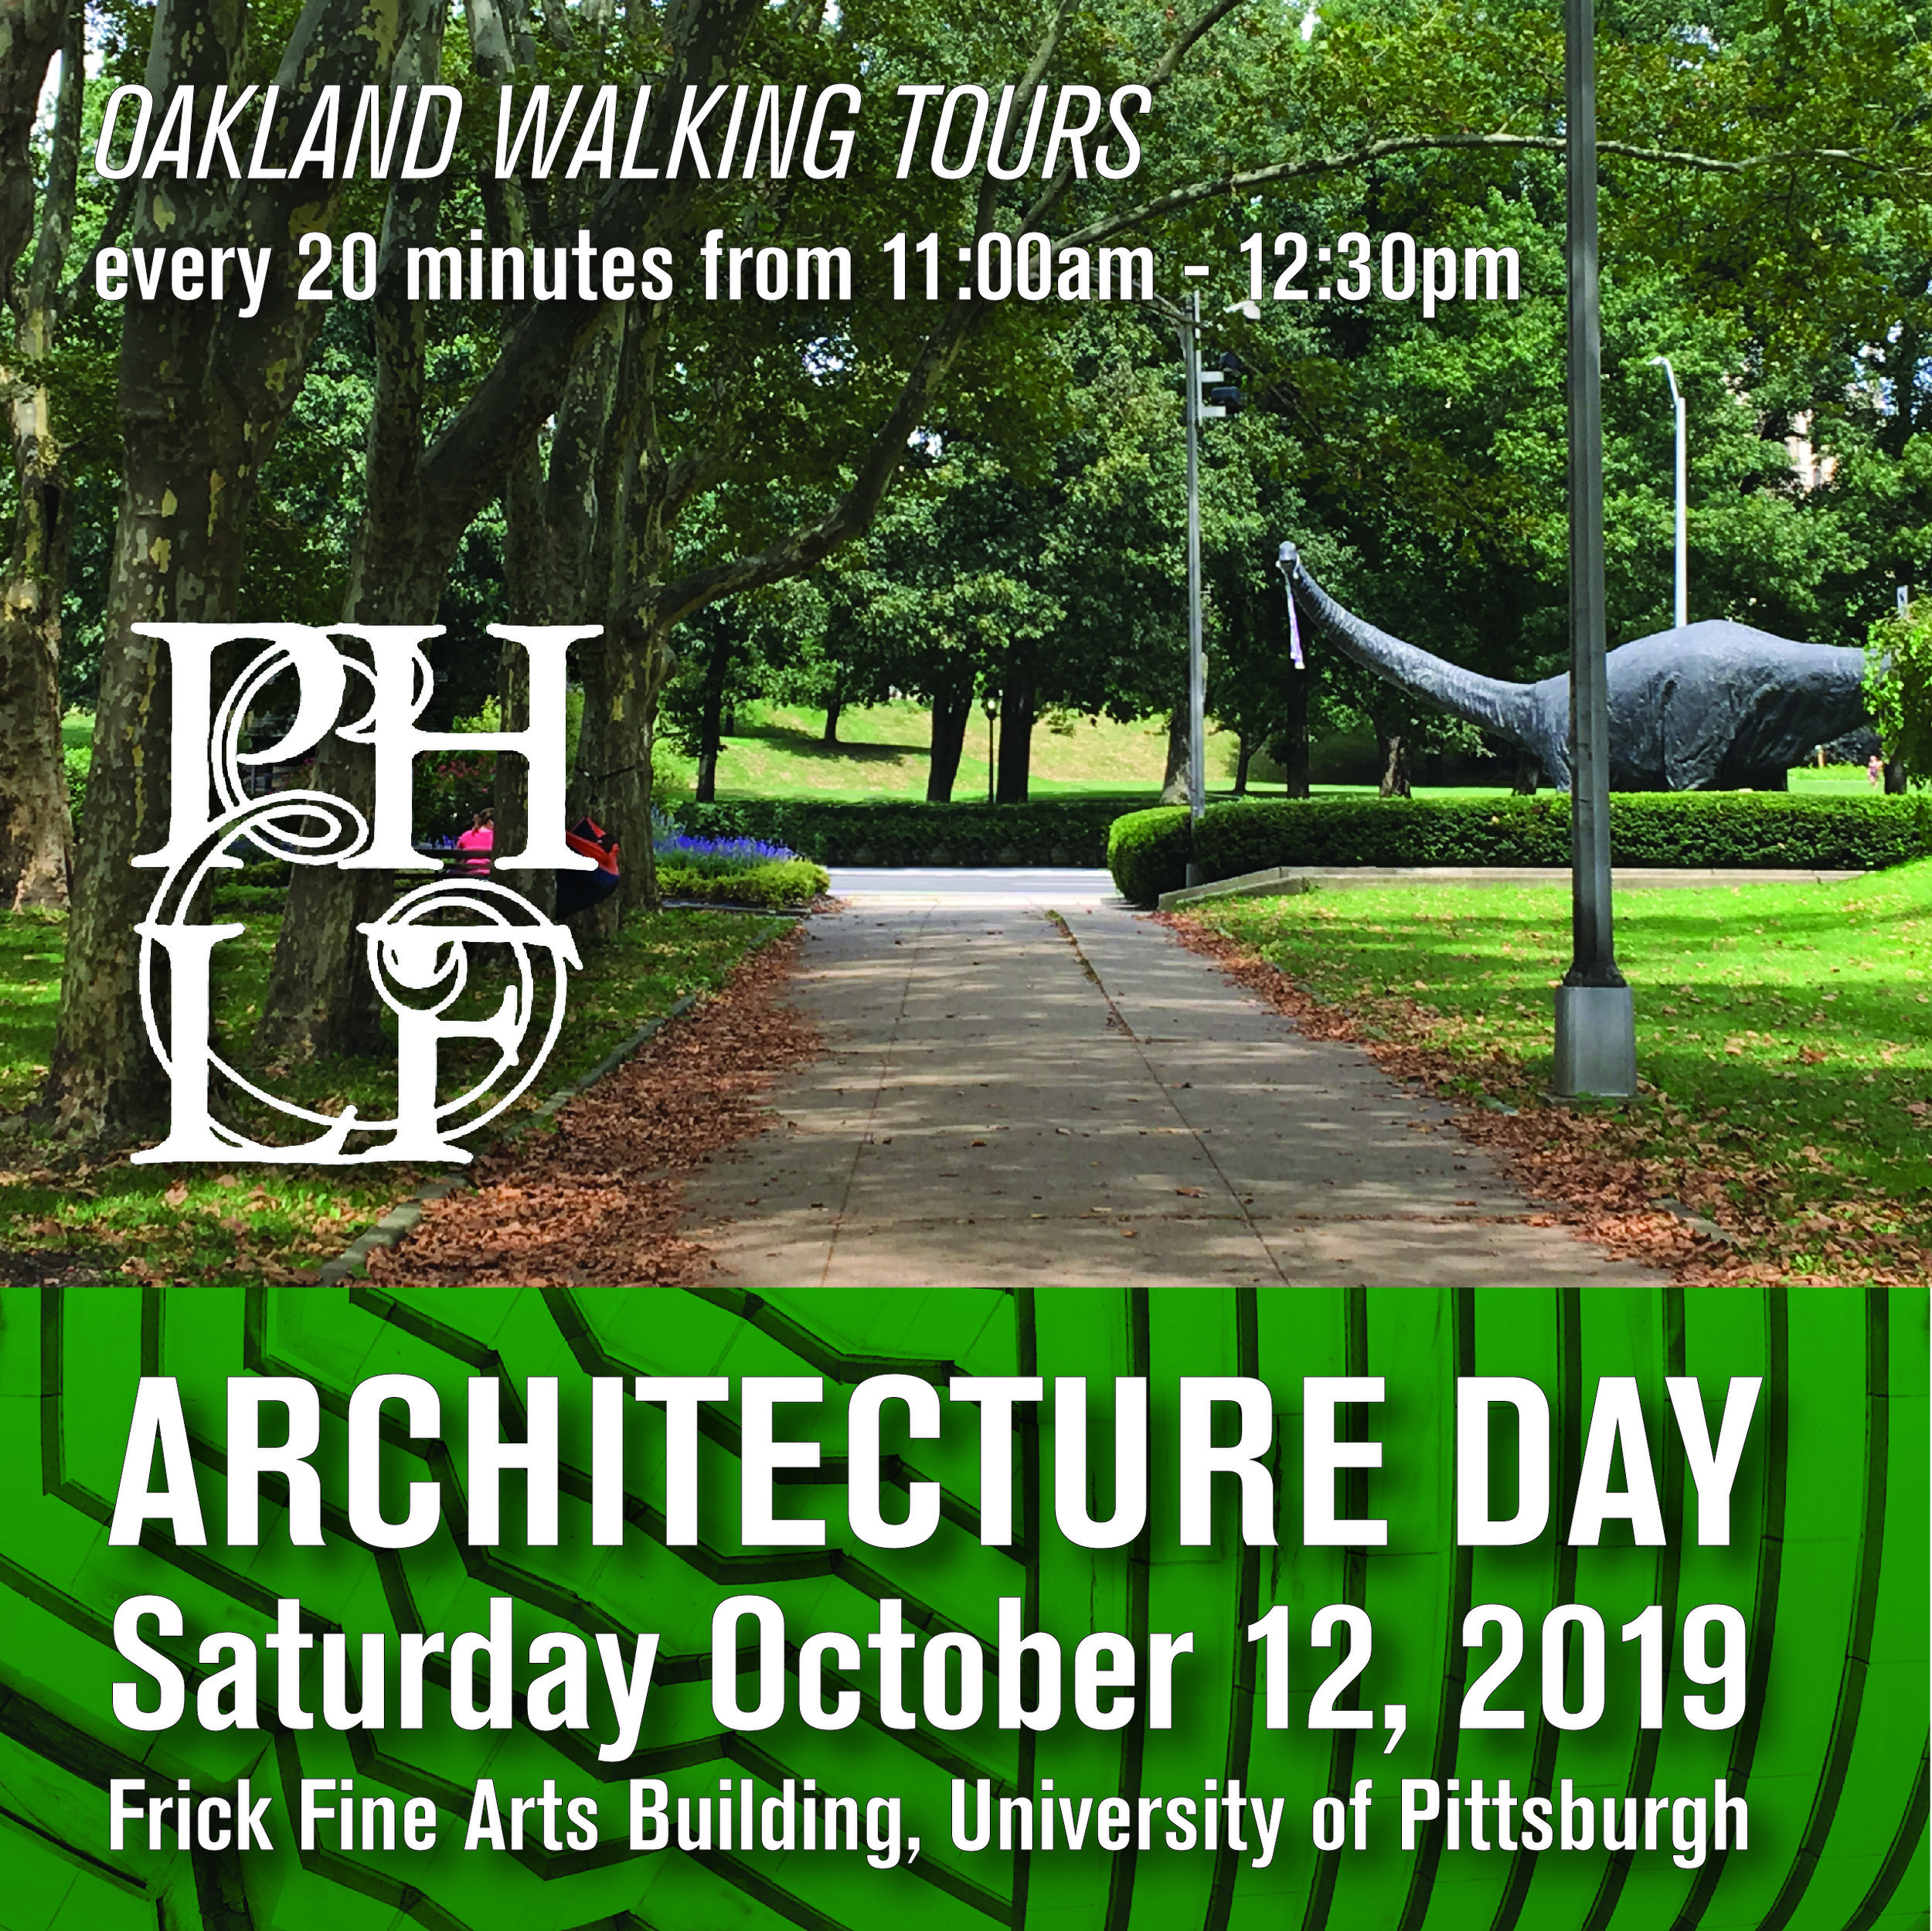 Walking Tours with PHLF 11:00am-12:30pm